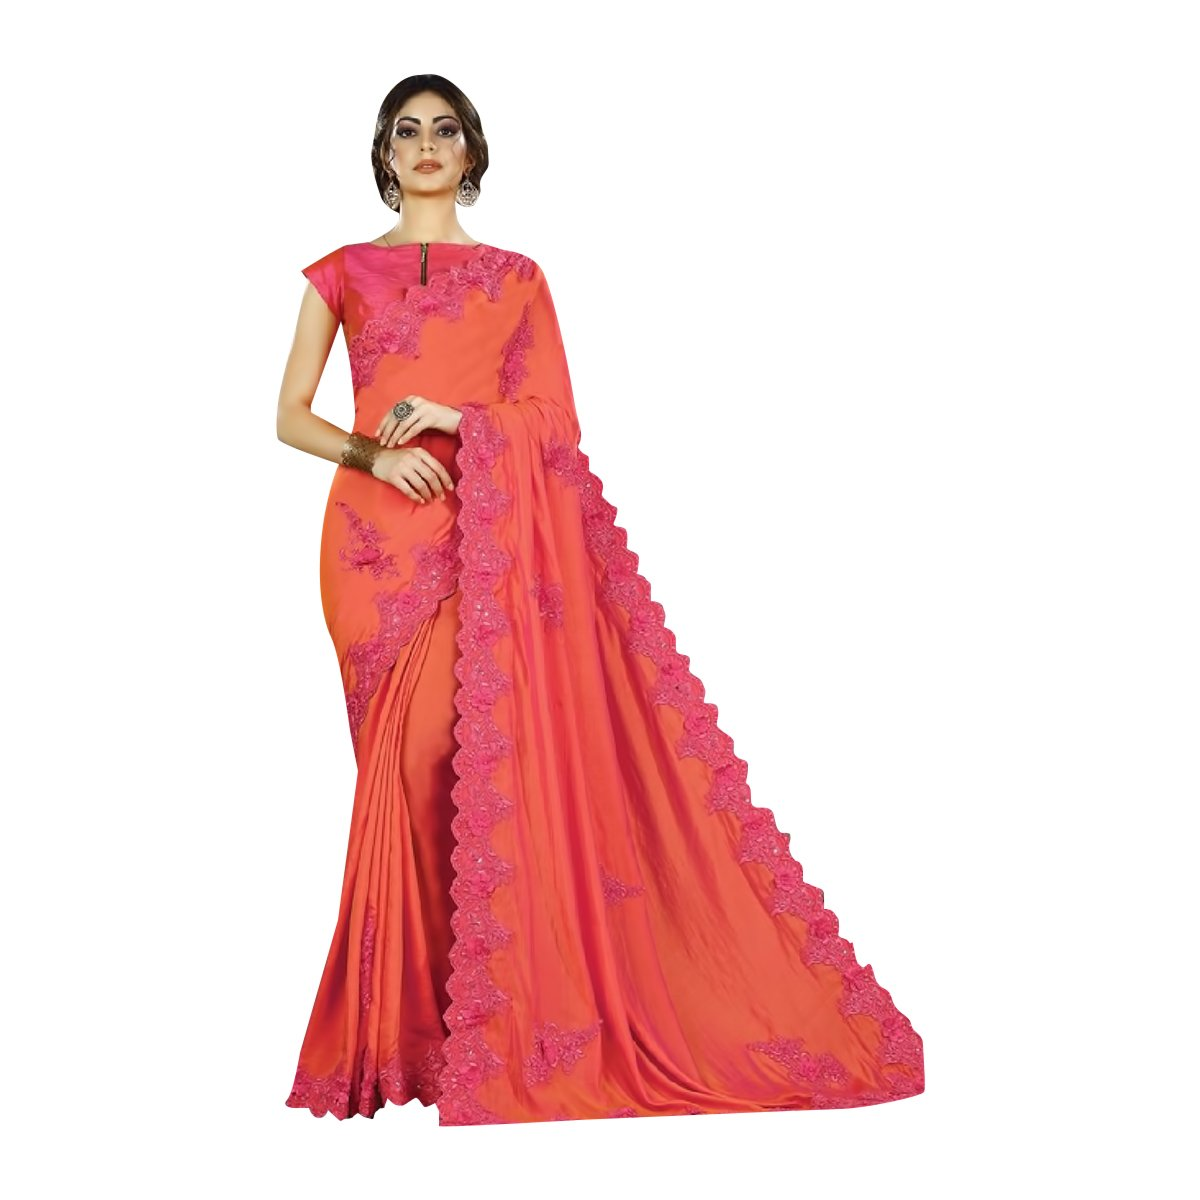 Designer RichLook Party Wear Indian Saree Wedding Bridal Suit Lehenga Women Dress 506